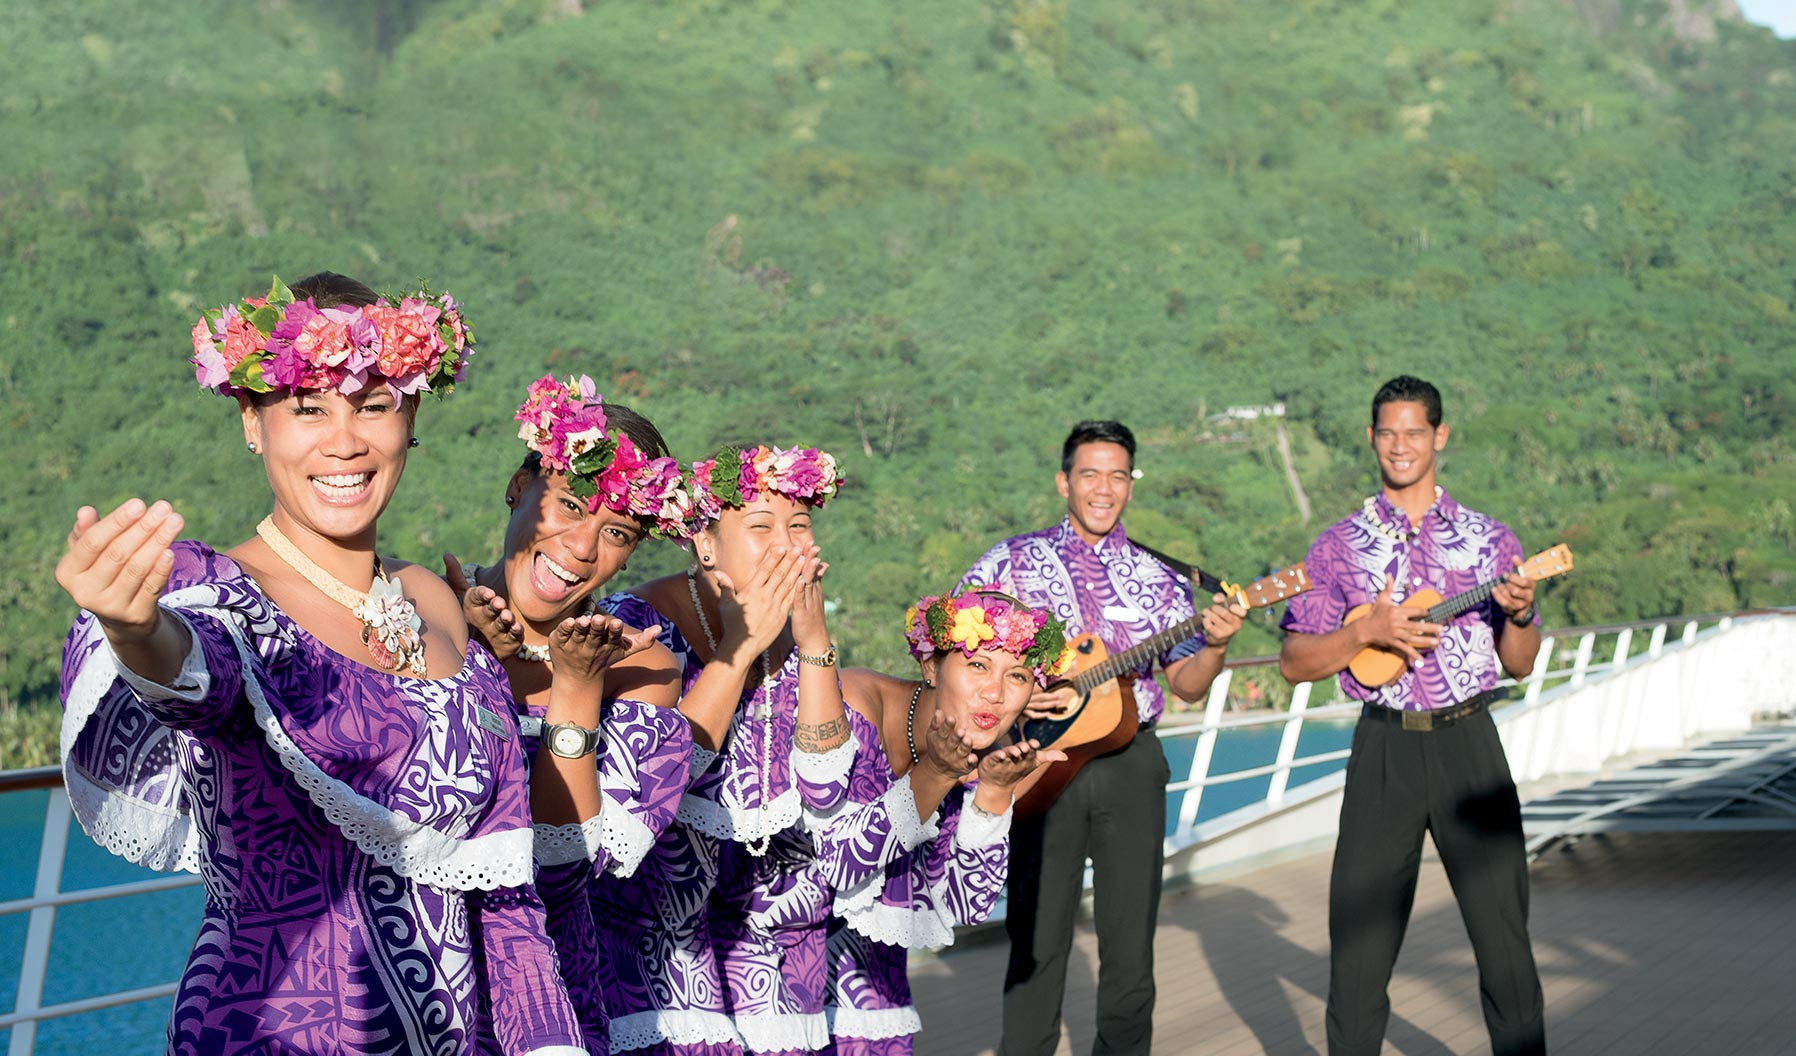 4 women and 2 men ready to welcome Paul Gauguin guests in purple dresses and shirt with flower crowns and musical instruments